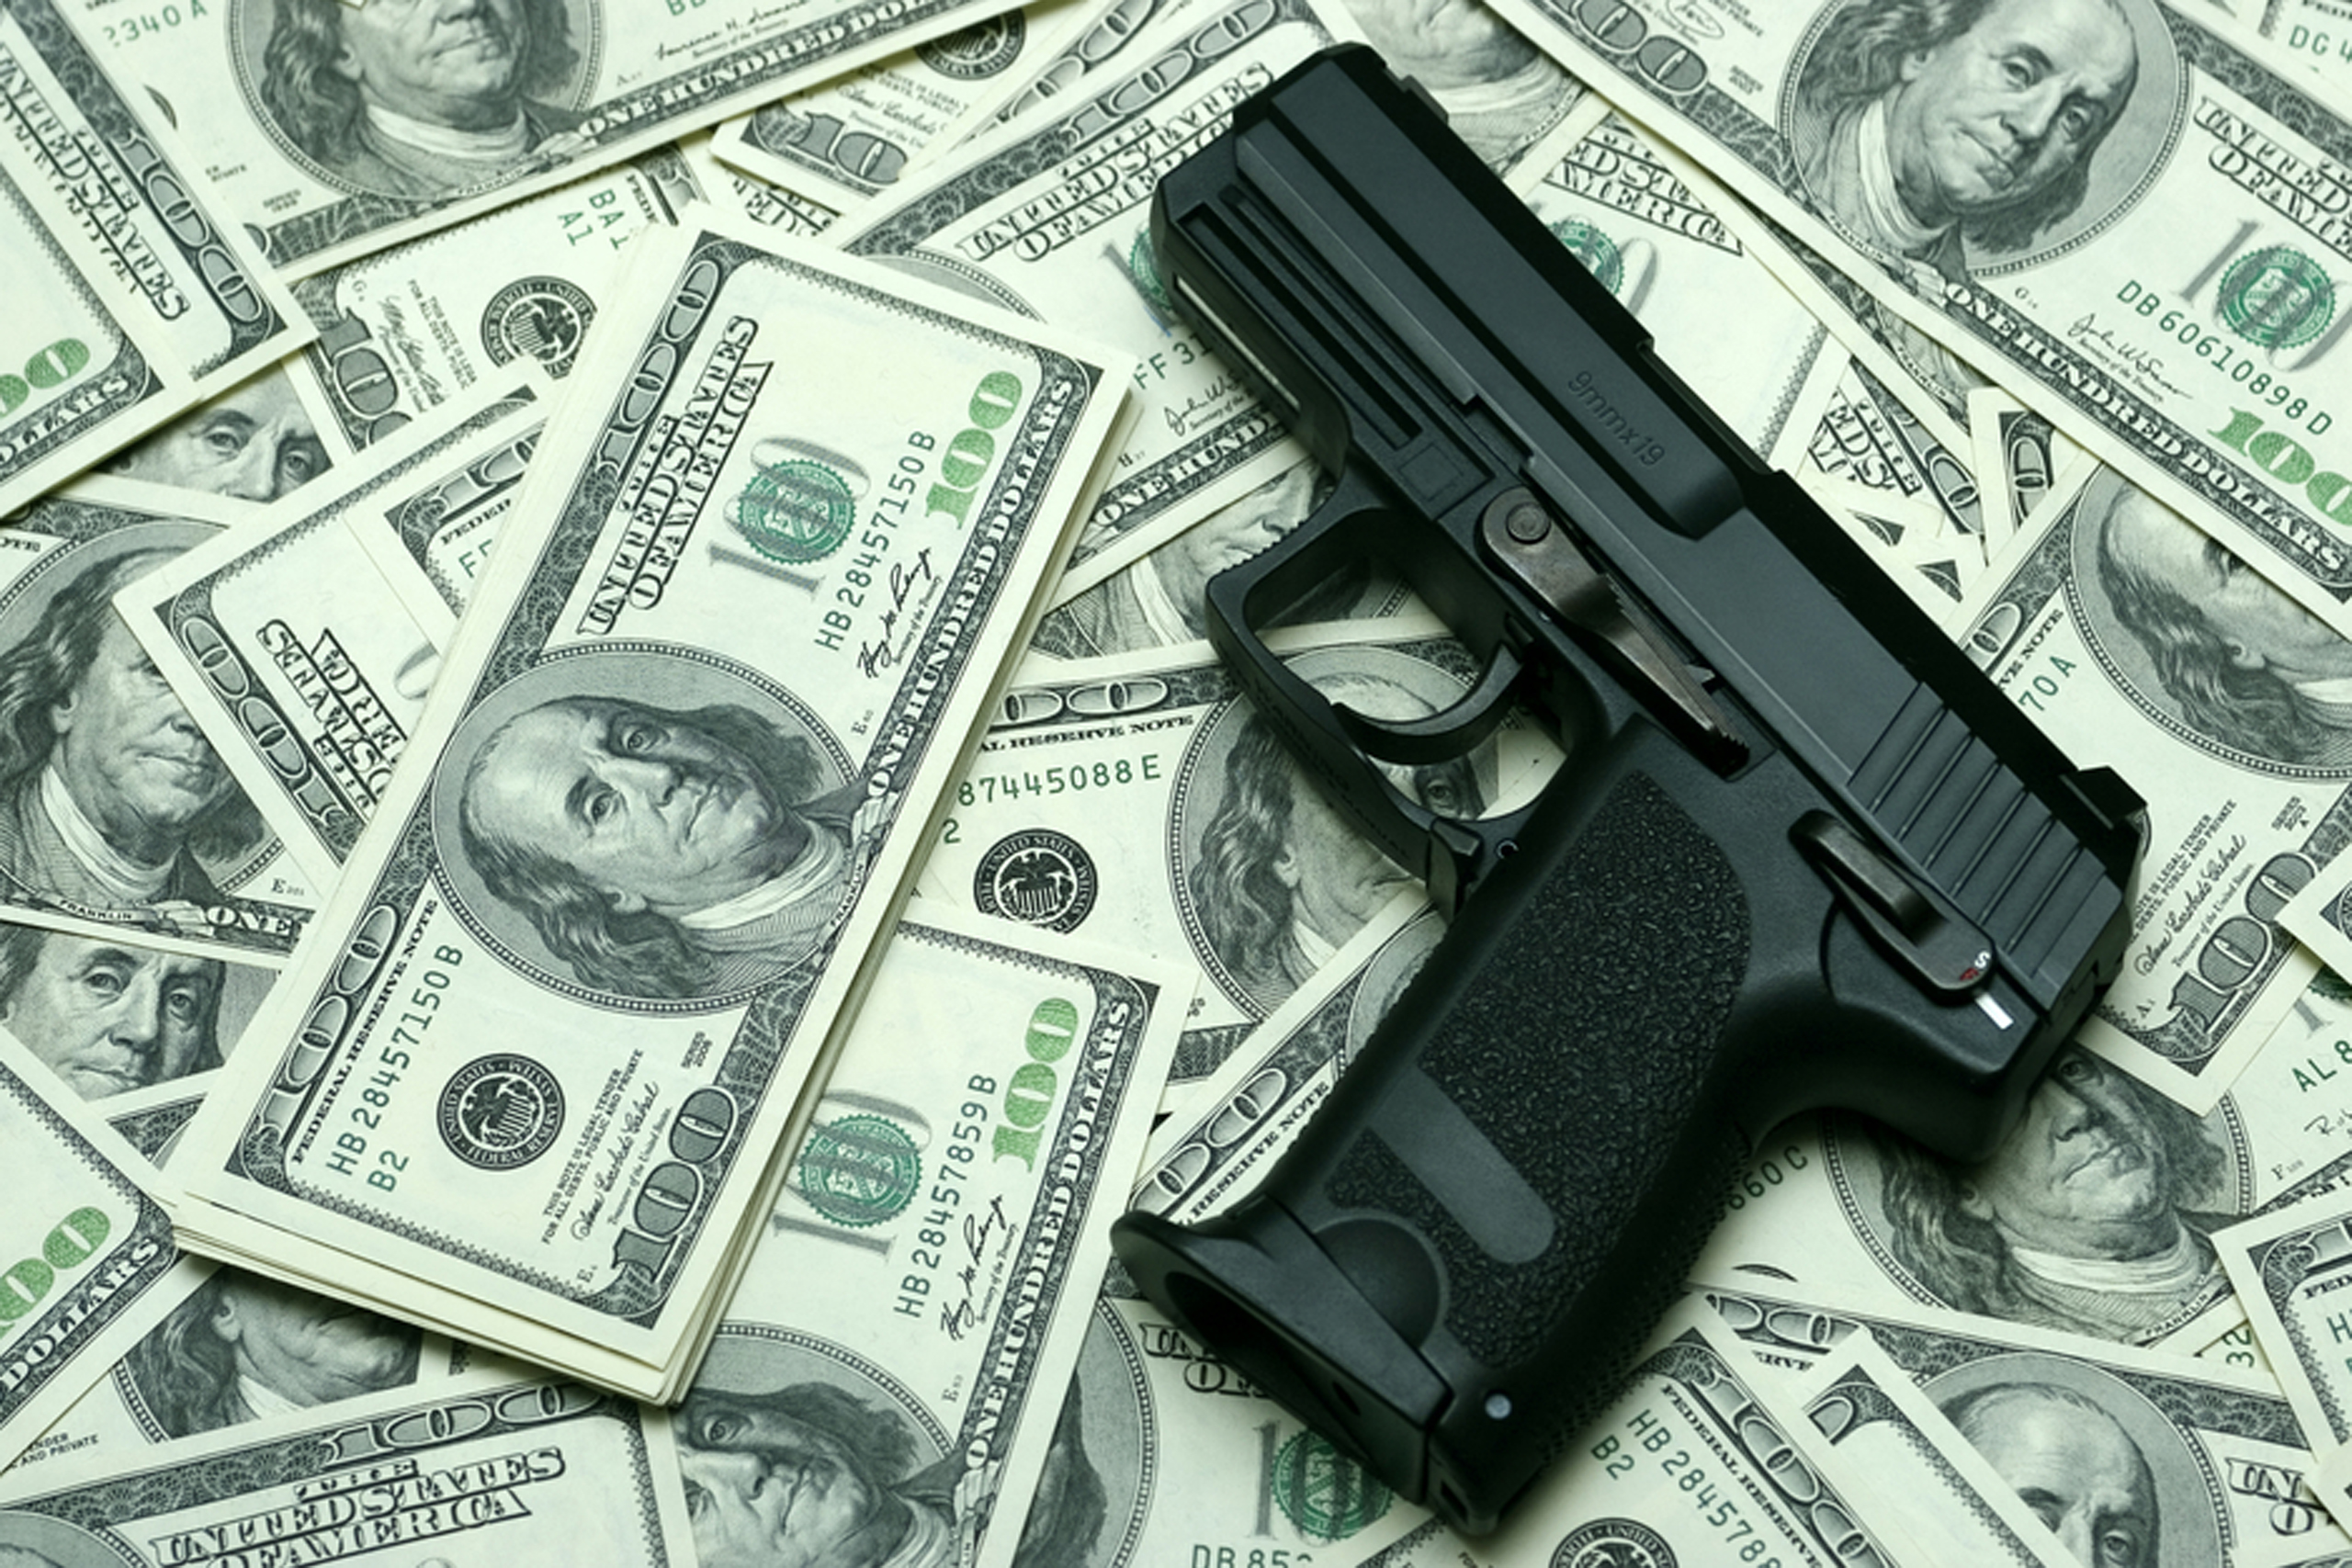 Money and Guns: How We Escape Our Existential Dread